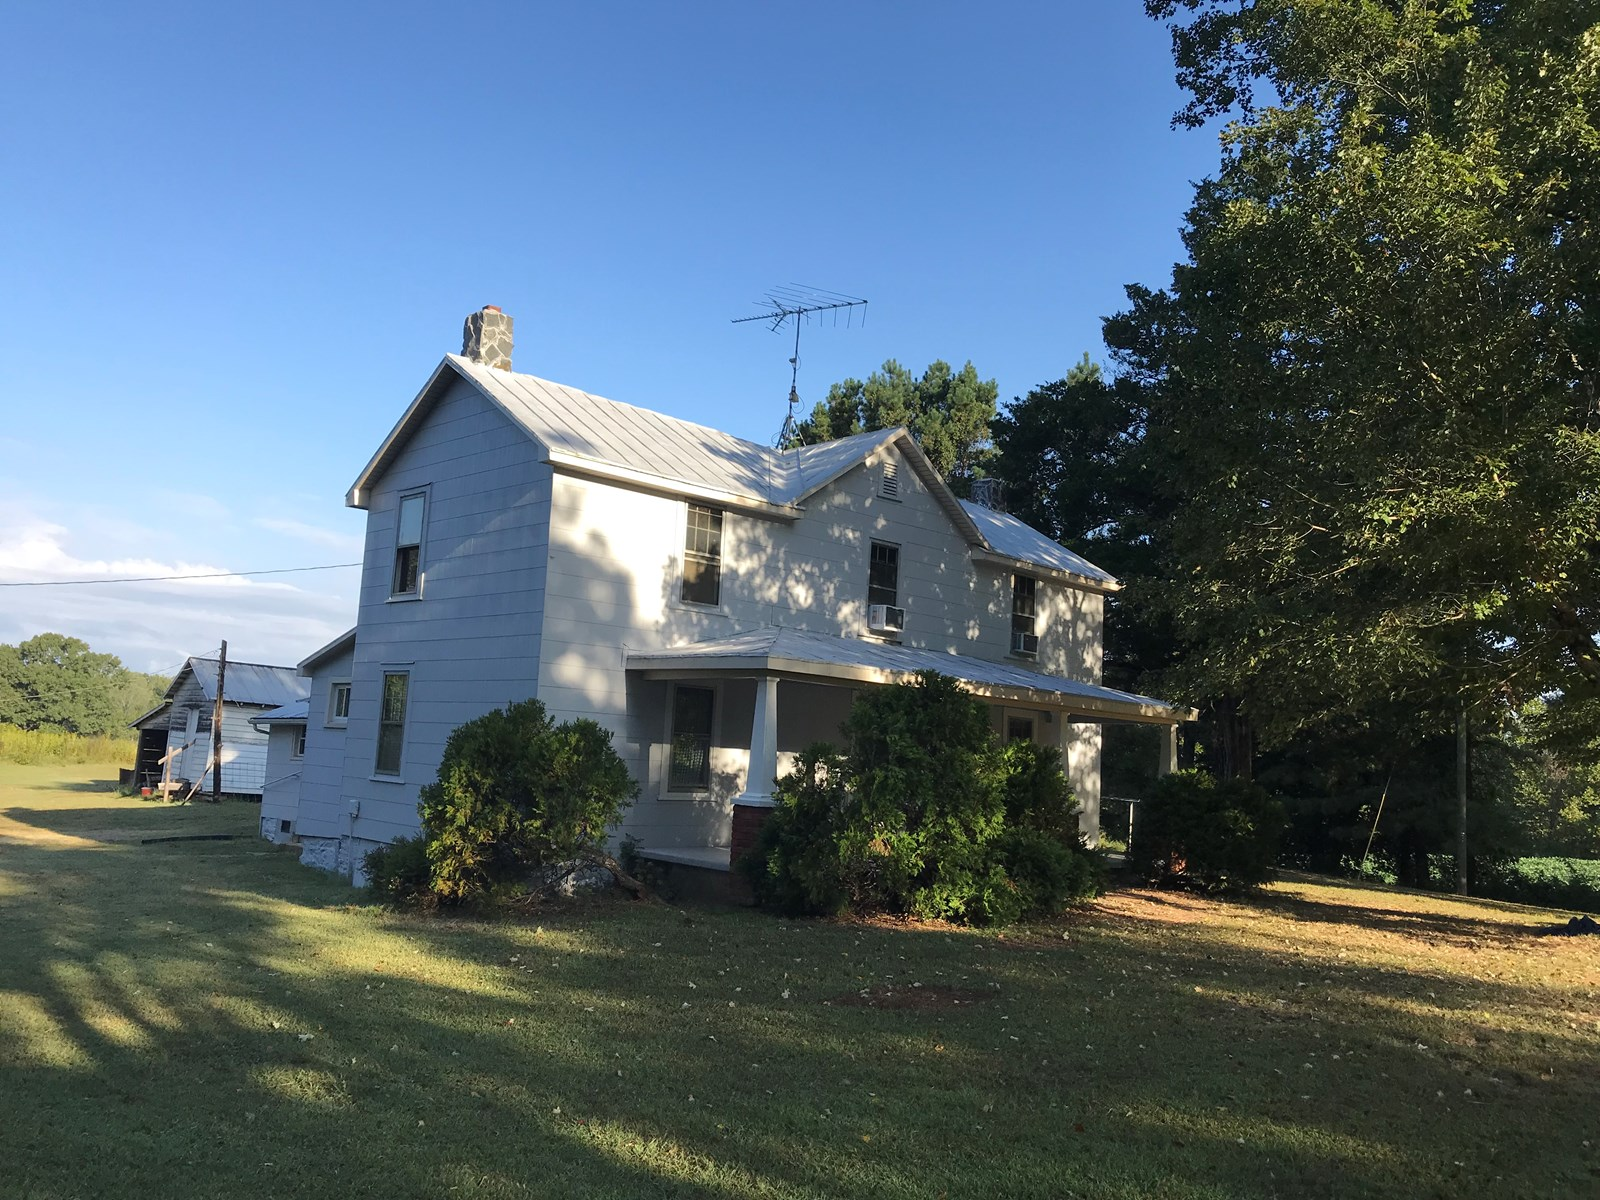 The Homeplace on Pecan Ridge, 3.4 ACRES HALIFAX COUNTY, VA